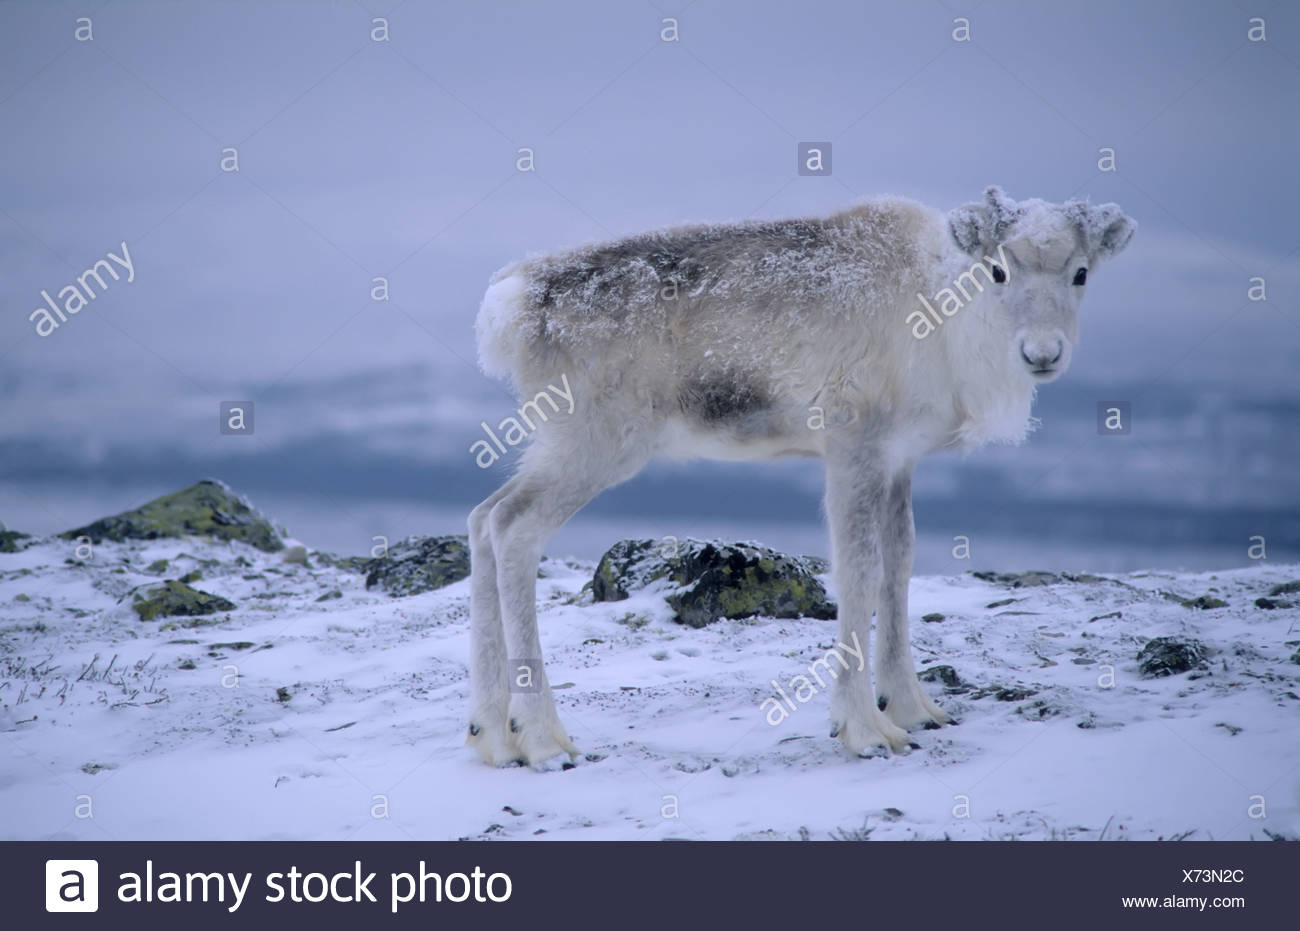 Scandinavia, Sweden, Dalarna, Animal in snow Stock Photo